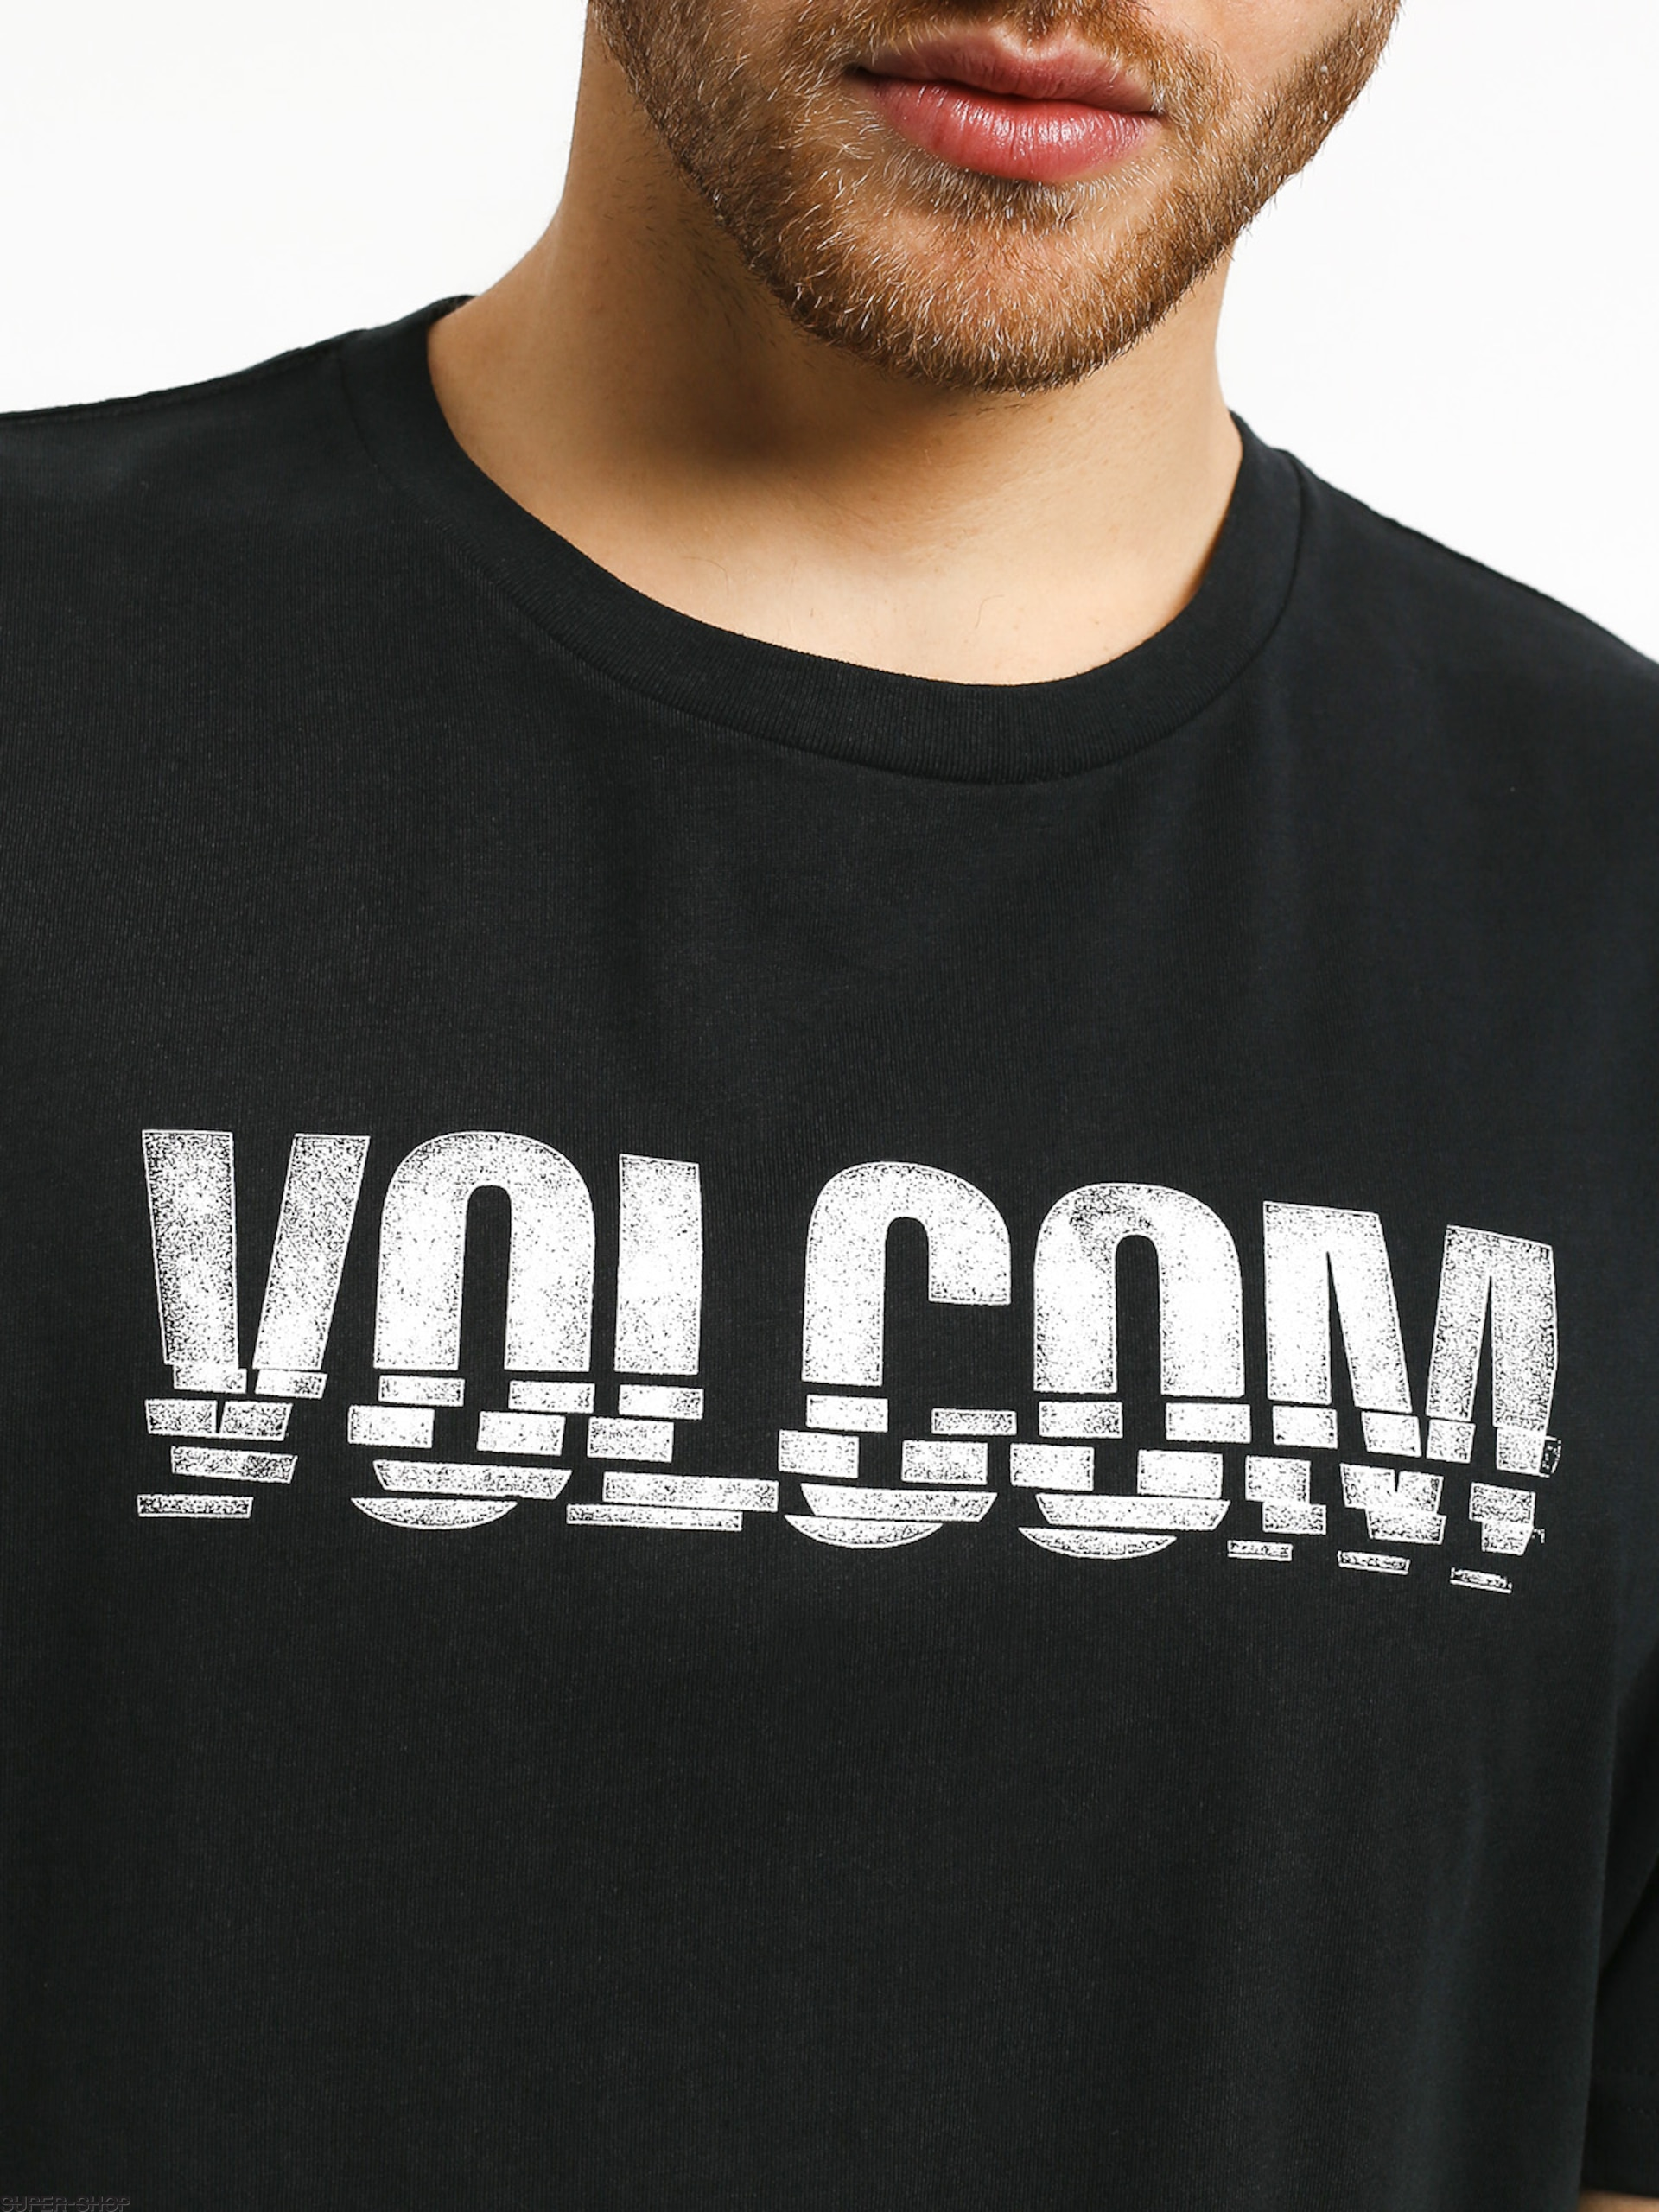 359390c6 Volcom Chopped Edge T-shirt (blk)